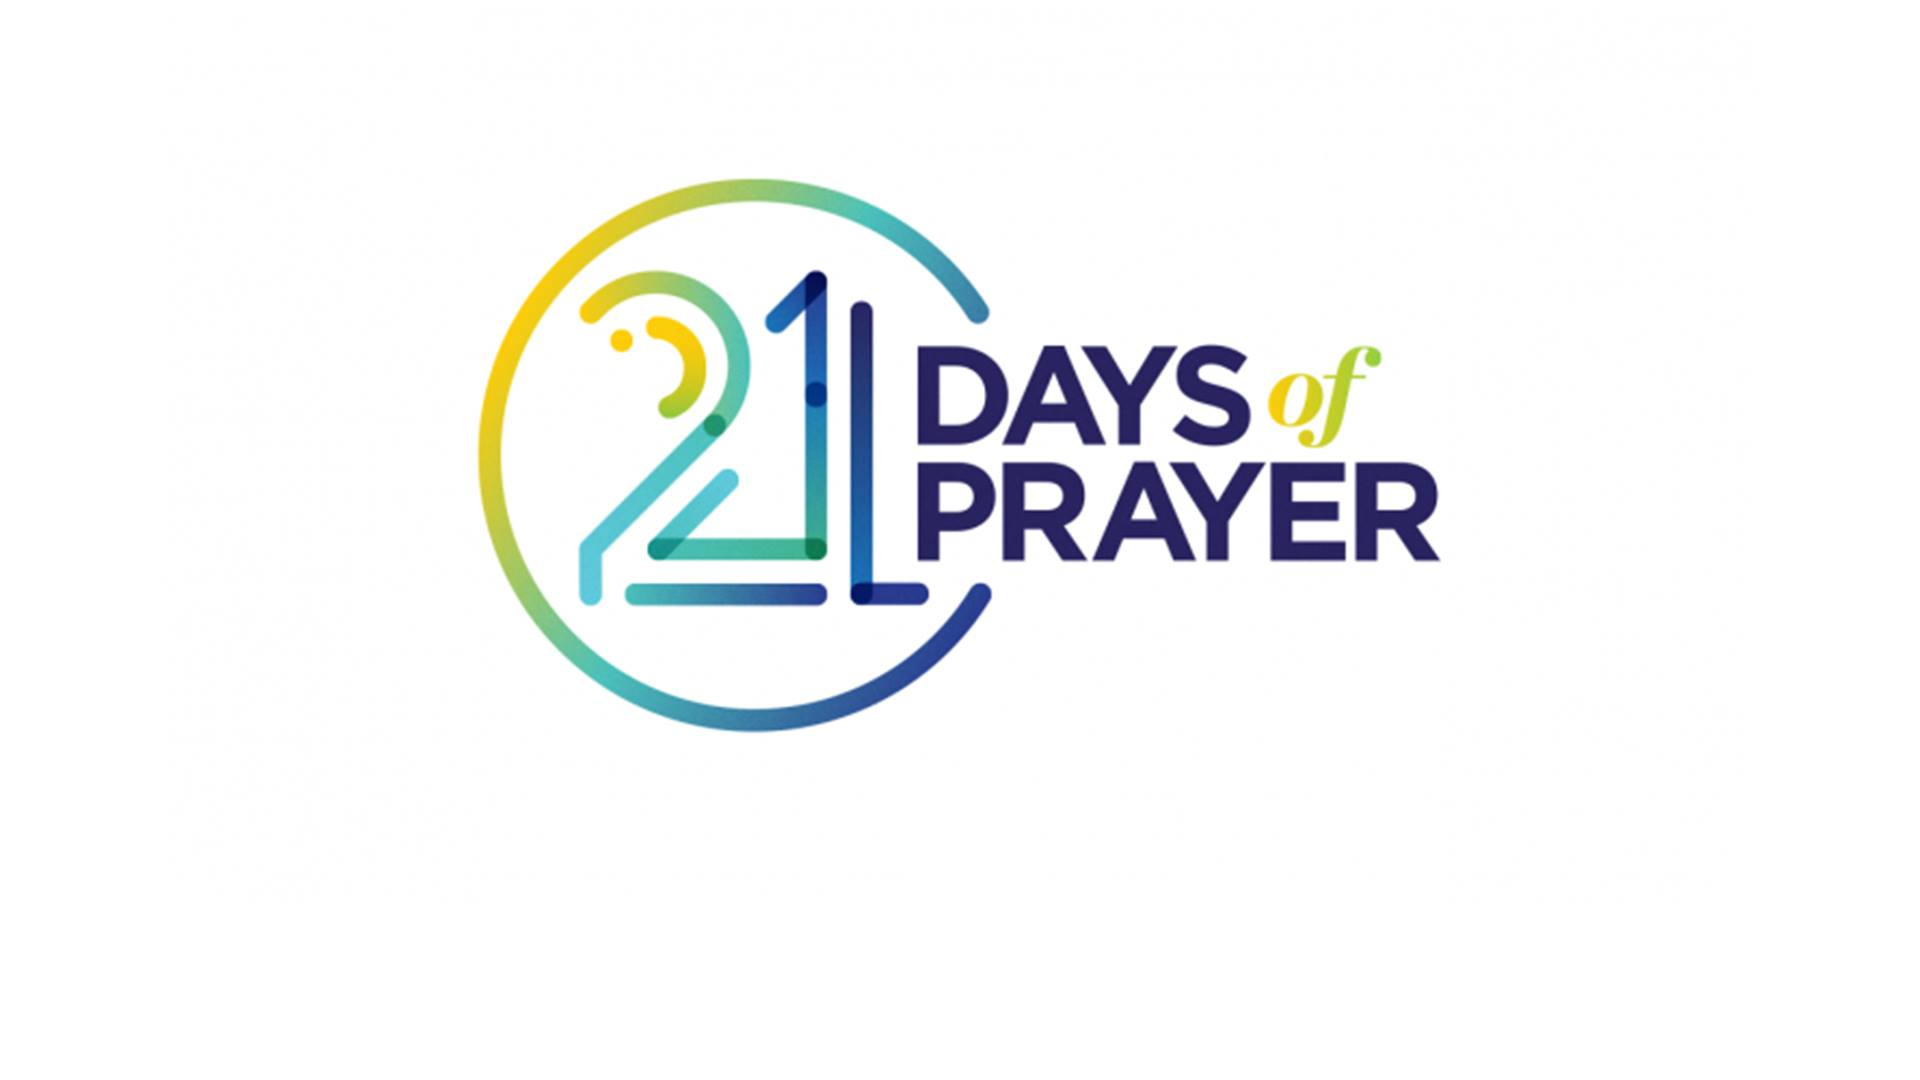 21 Days of Prayer offers us the opportunity to focus on spending time with God in prayer. It's a season to let go of things which may be holding us back and to pursue healthy spiritual growth through being known, loved, and challenged. Download the accompanying daily devotional  here .